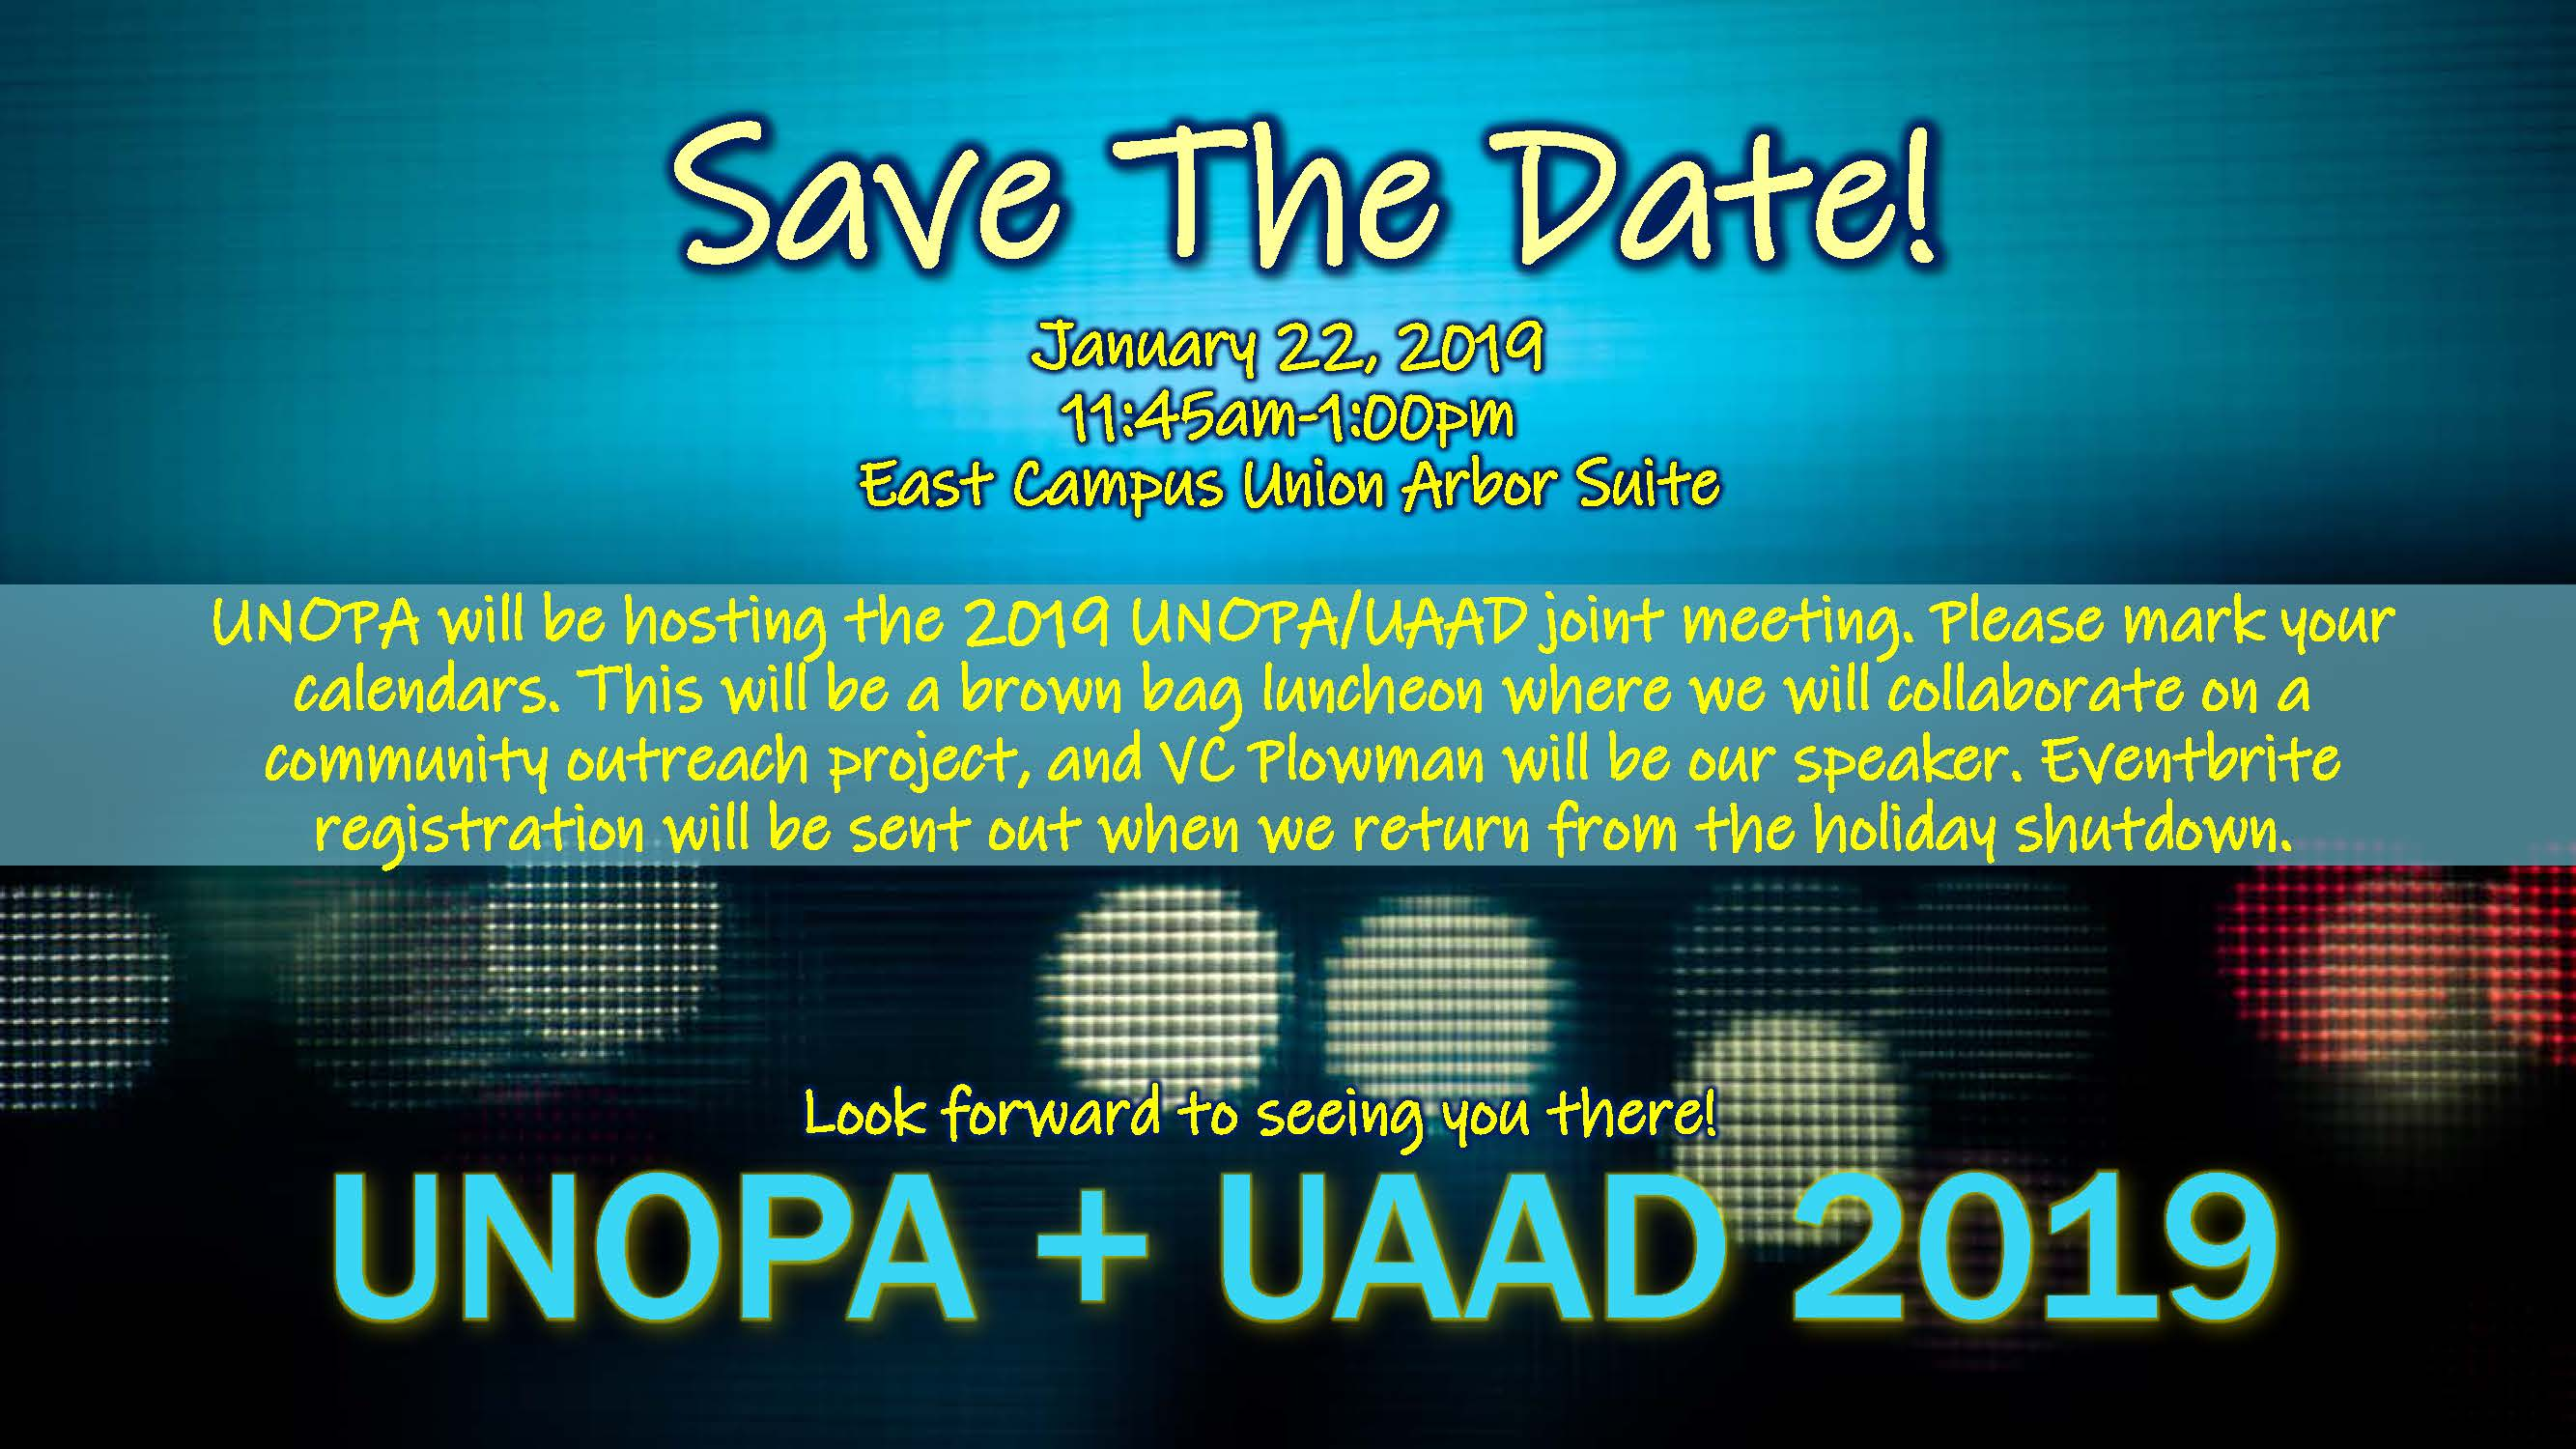 Save the Date: UNOPA + UAAD Meeting